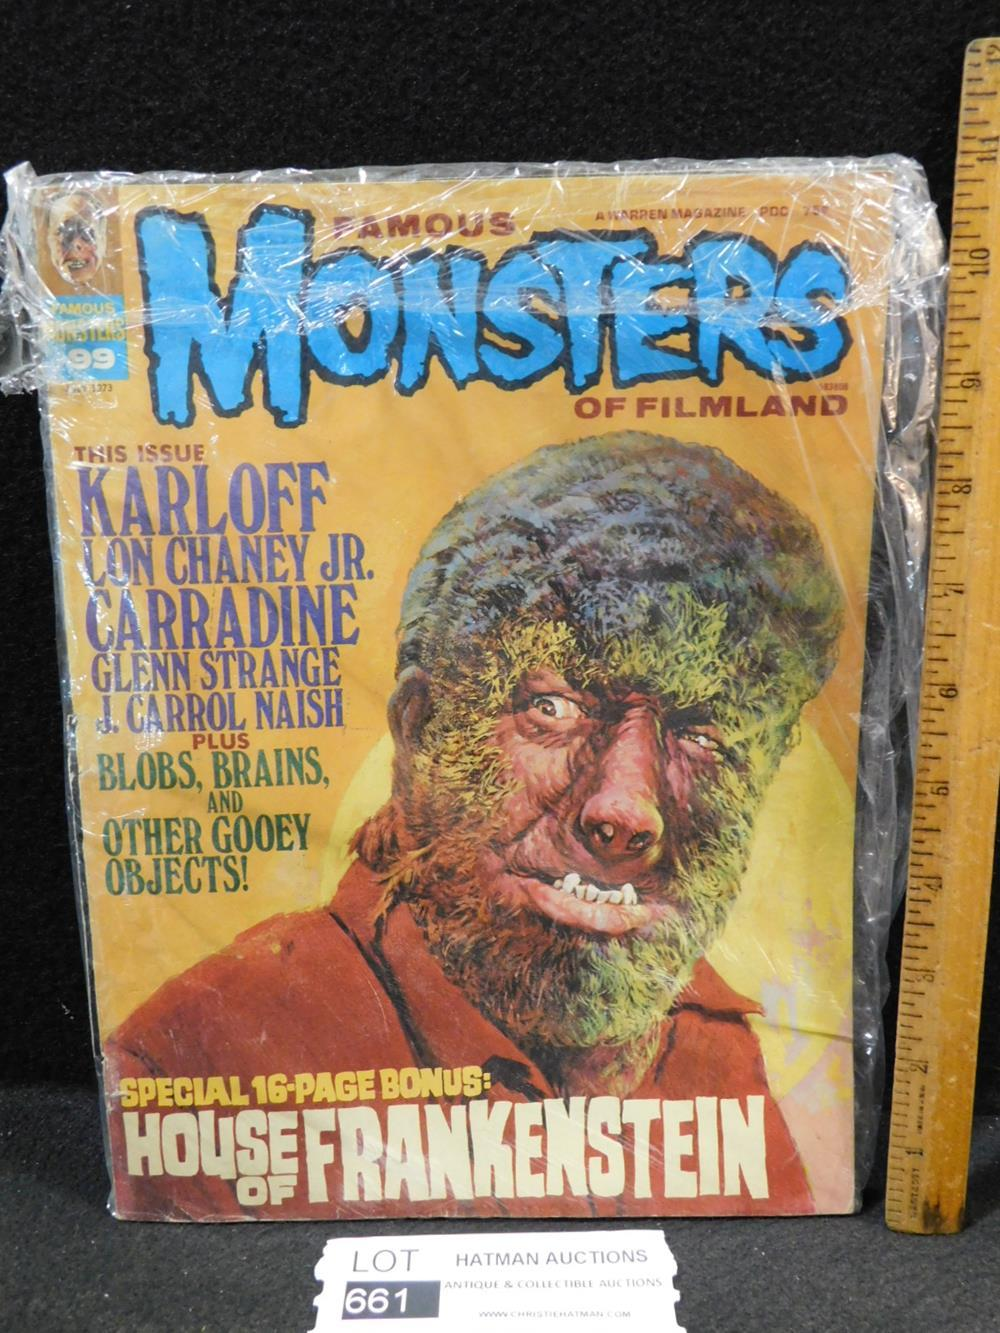 THE FAMOUS MONSTERS OF FILMLAND MAGAZINE